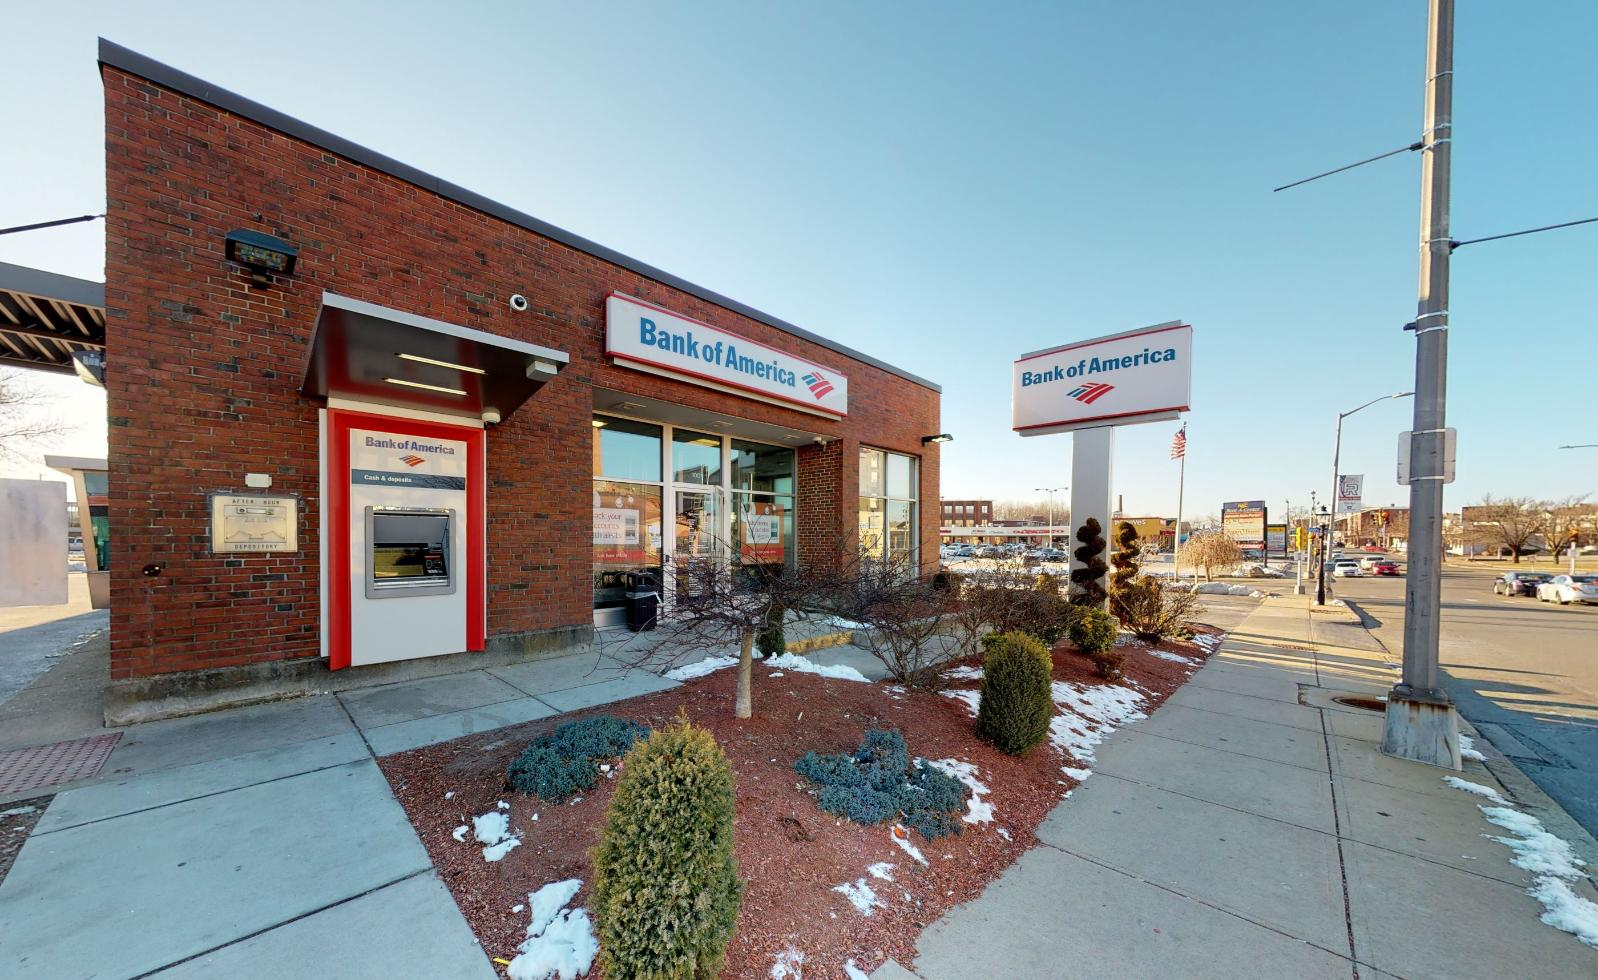 Bank of America financial center with walk-up ATM | 1001 Pleasant St, Fall River, MA 02723